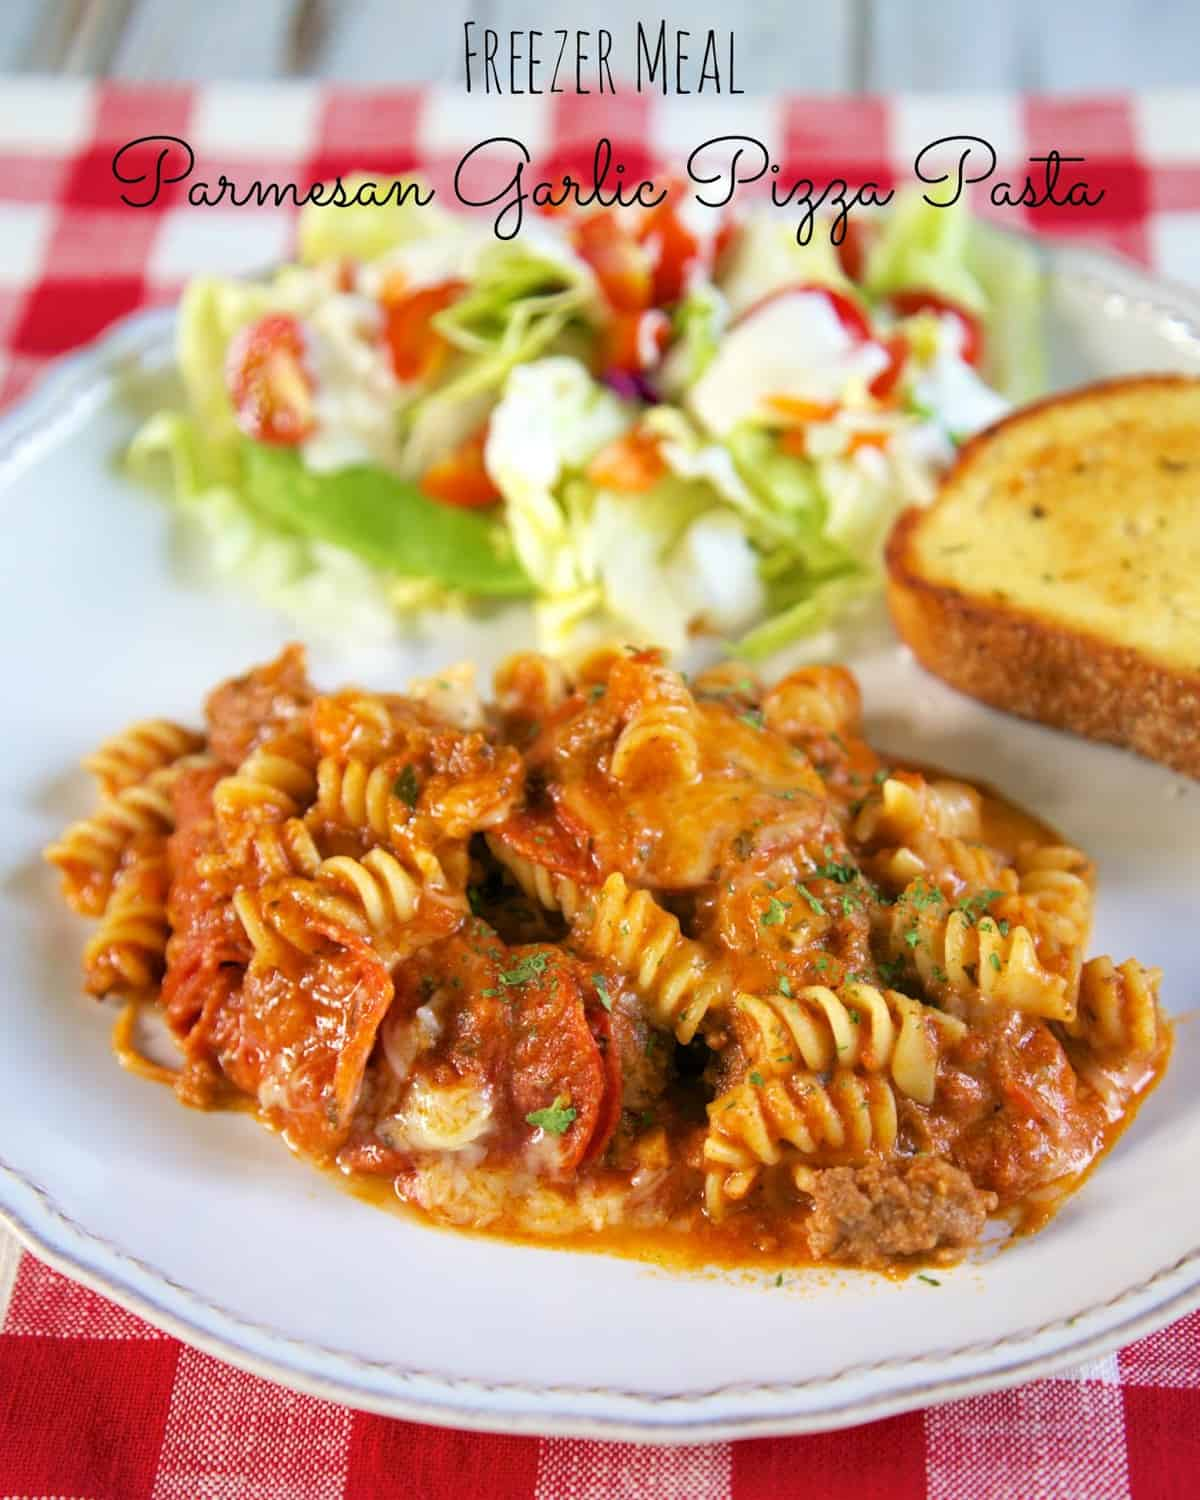 Slow Cooker Parmesan Garlic Pizza Pasta - FREEZER MEAL - just dump everything in the bag and freeze for a quick meal later. Ground beef, pepperoni, onion, garlic bread seasoning, marinara, water, mozzarella and pasta. No need to cook the ground beef or pasta ahead of time. It all cooks in the slow cooker. #slowcooker #freezermeal #kidfriendly